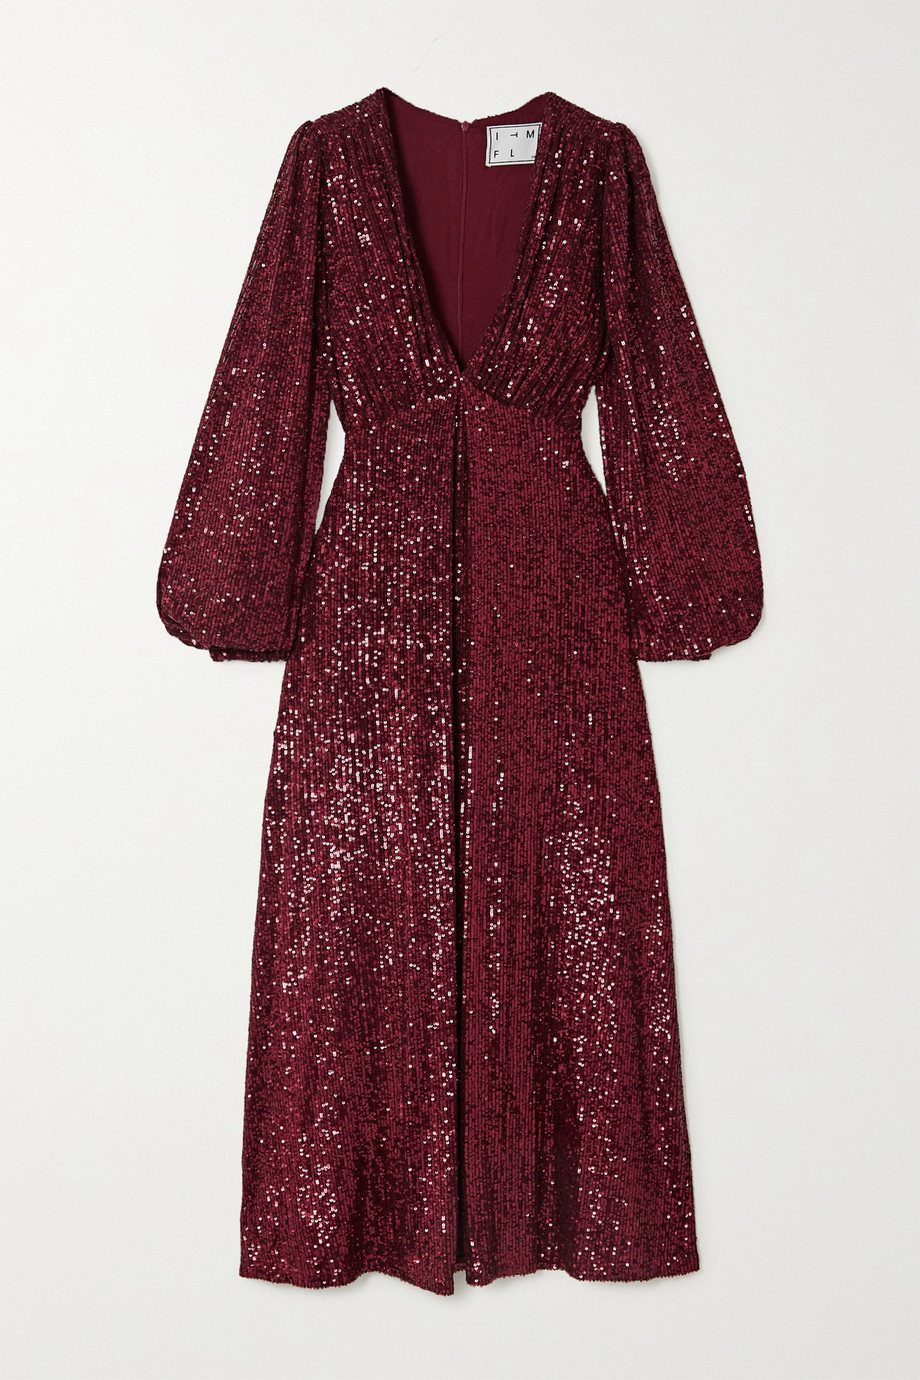 In The Mood For Love Irina sequined tulle midi dress